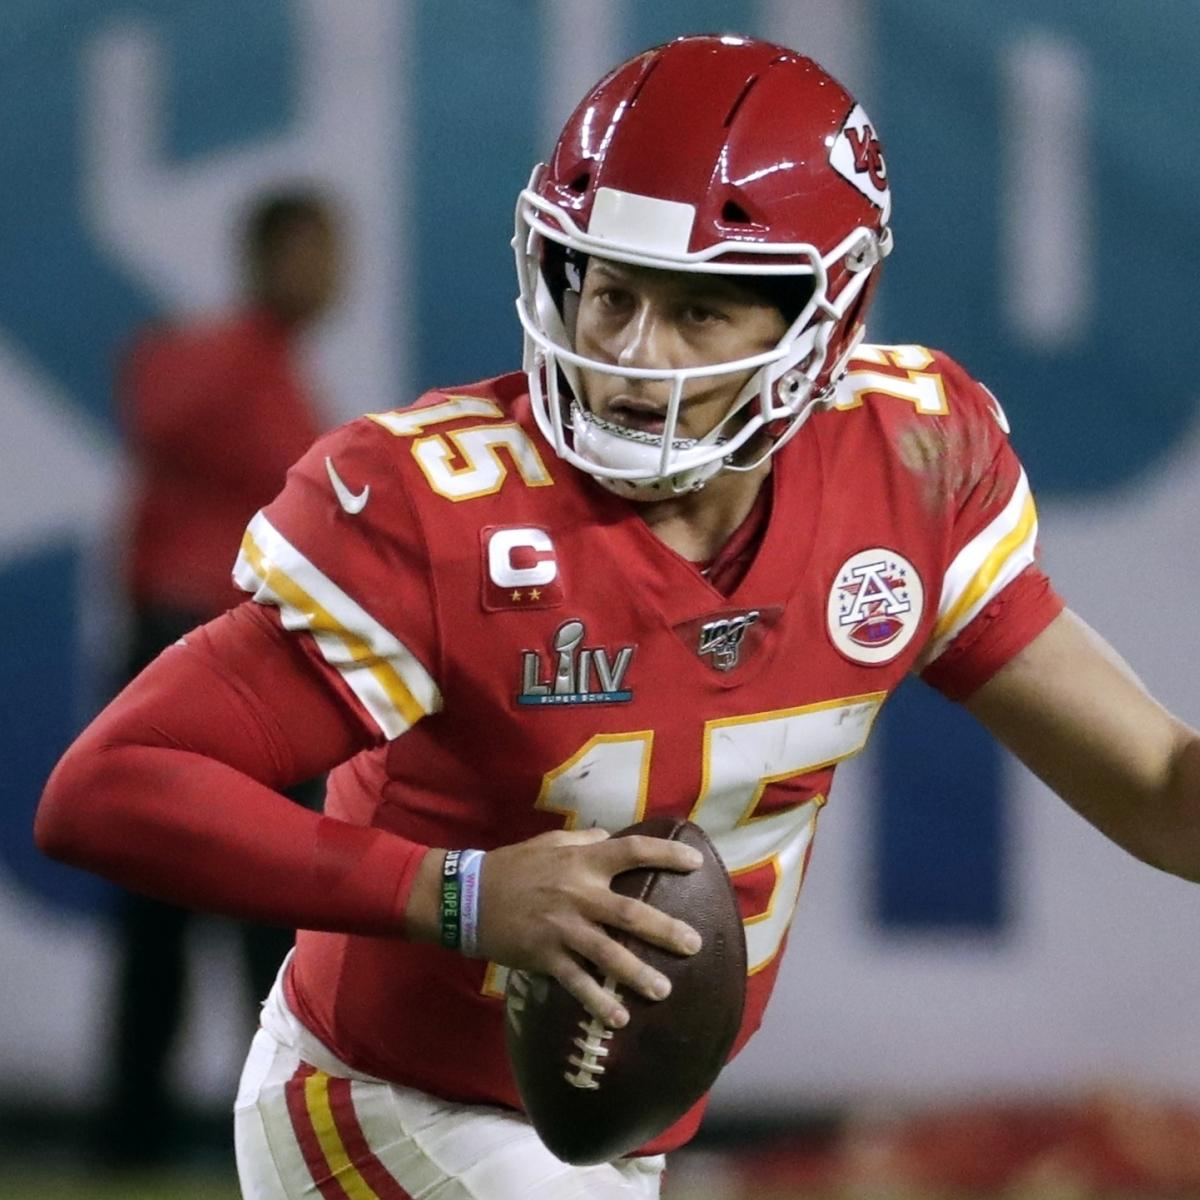 Mahomes Brees and More Tweet on NFL Not Following COVID-19 Safety Guidelines – Bleacher Report